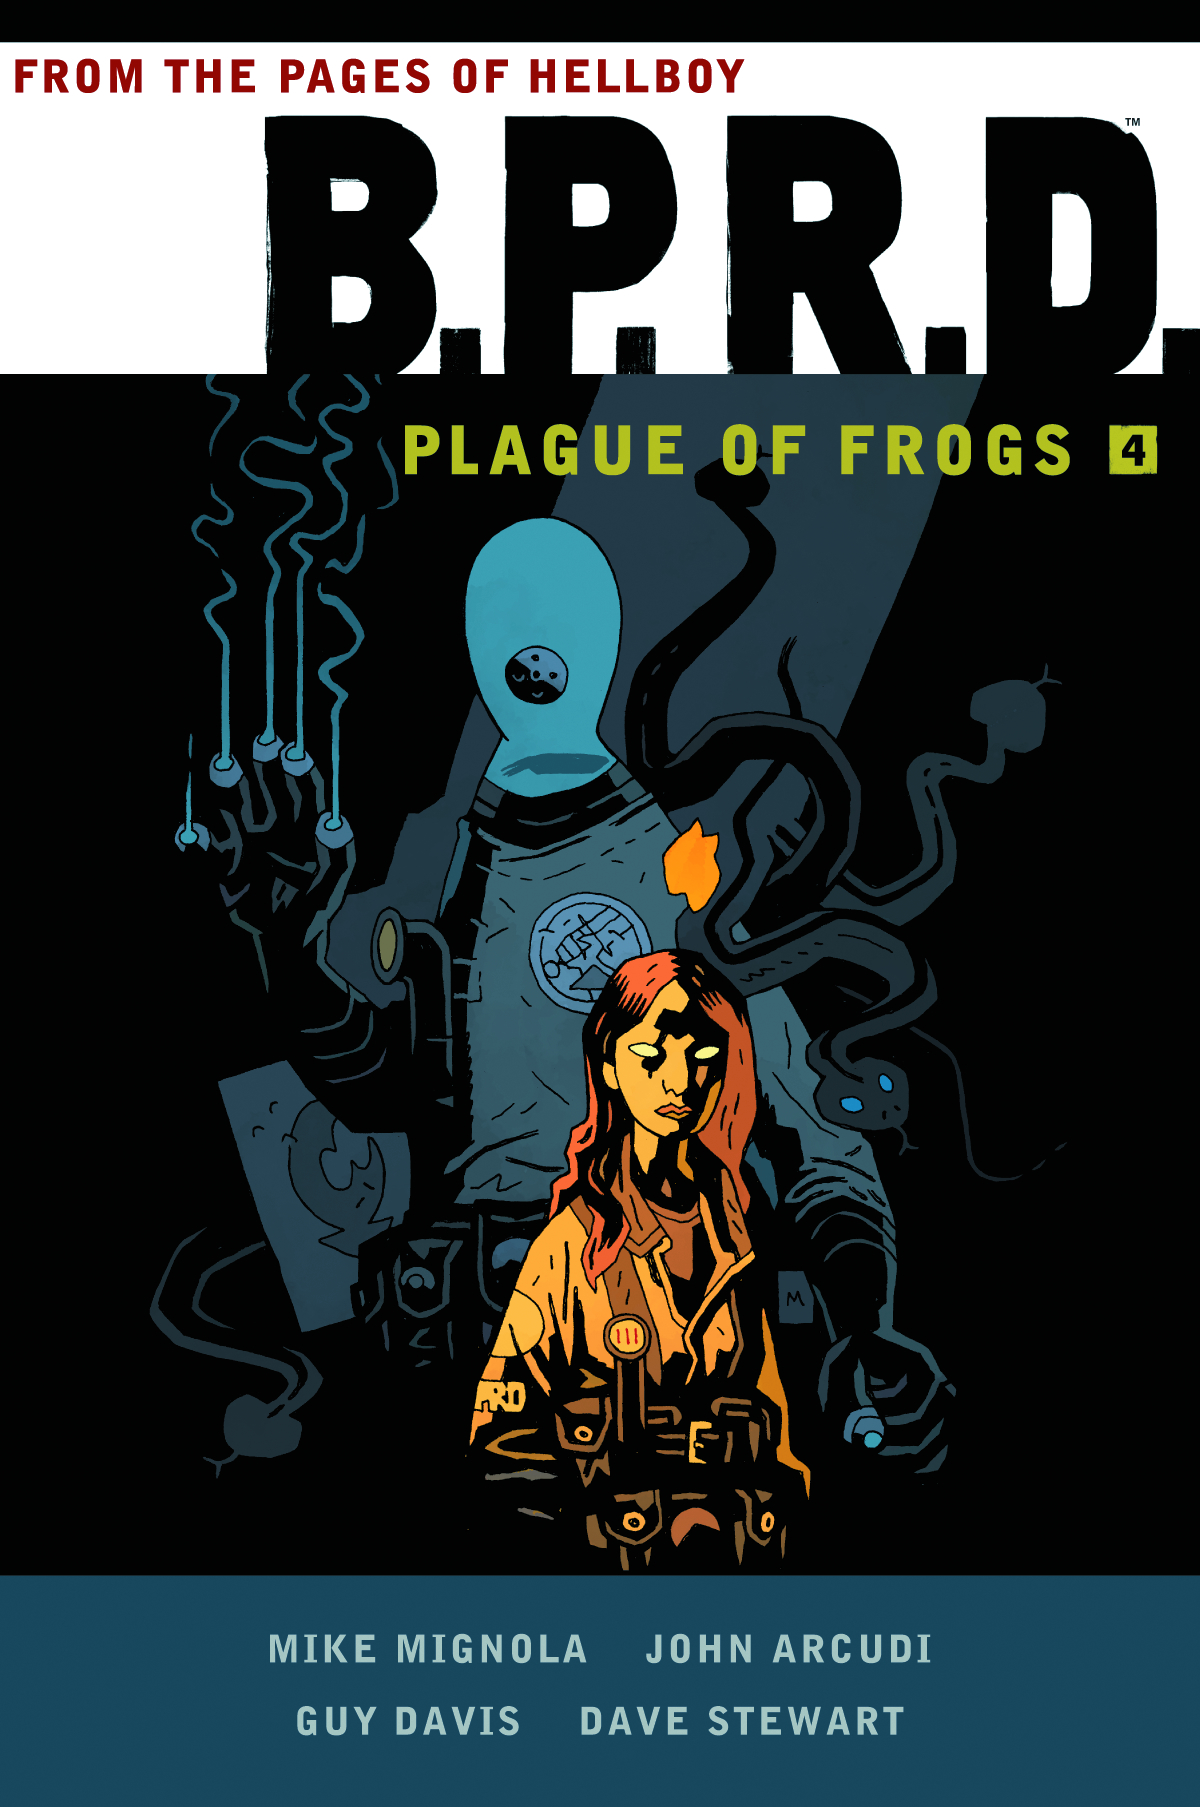 BPRD PLAGUE OF FROGS HC VOL 04